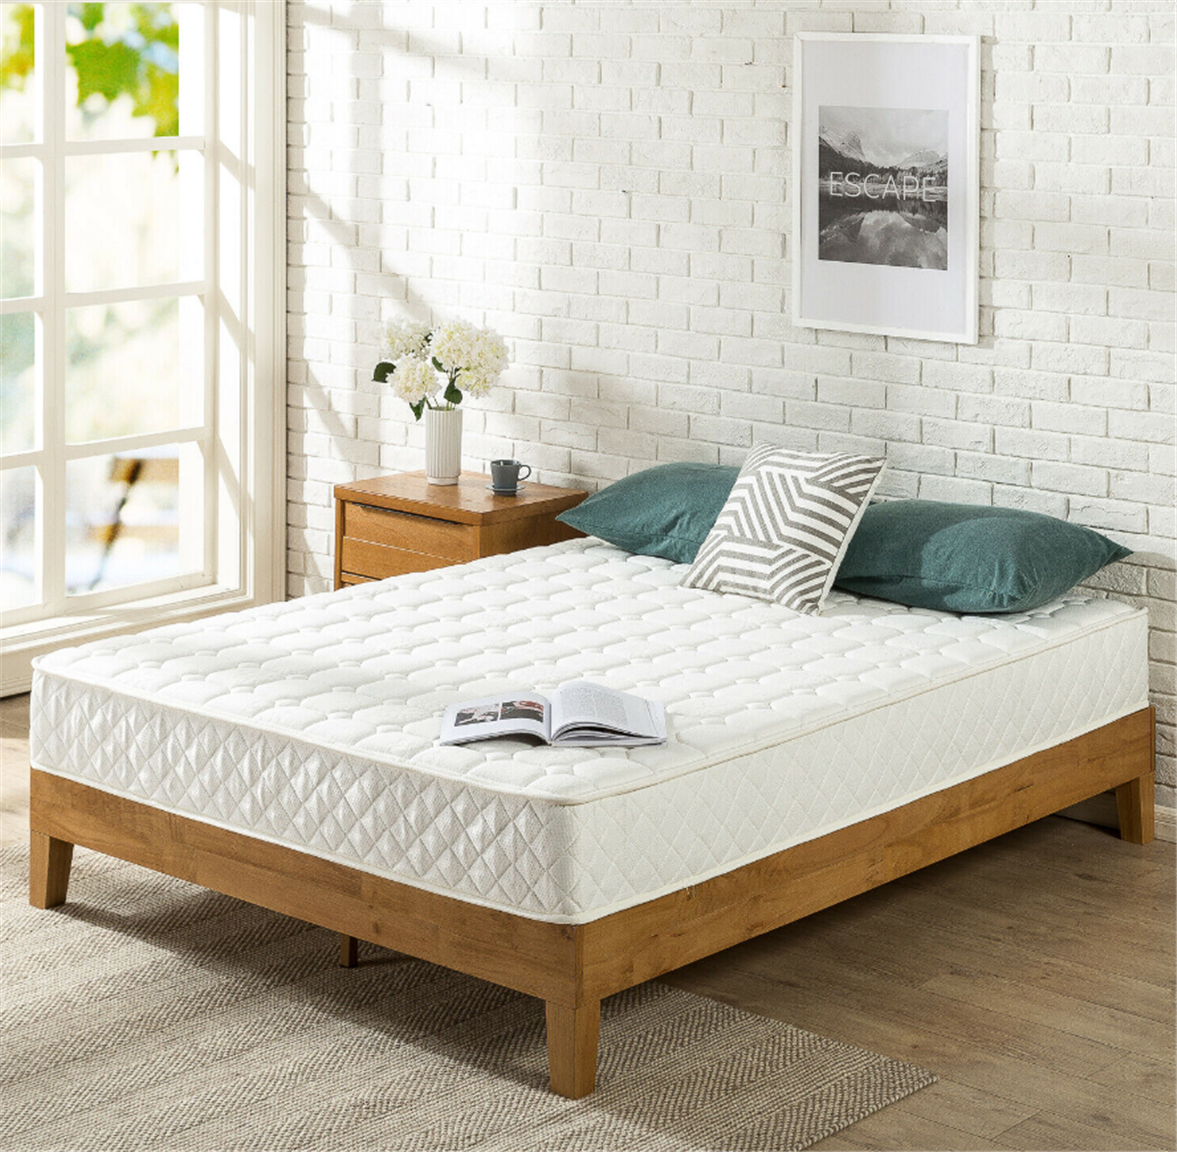 Zinus 8″ Mattress w/ Quilted Cover as Low as $36, Reg $119 + Free Shipping!